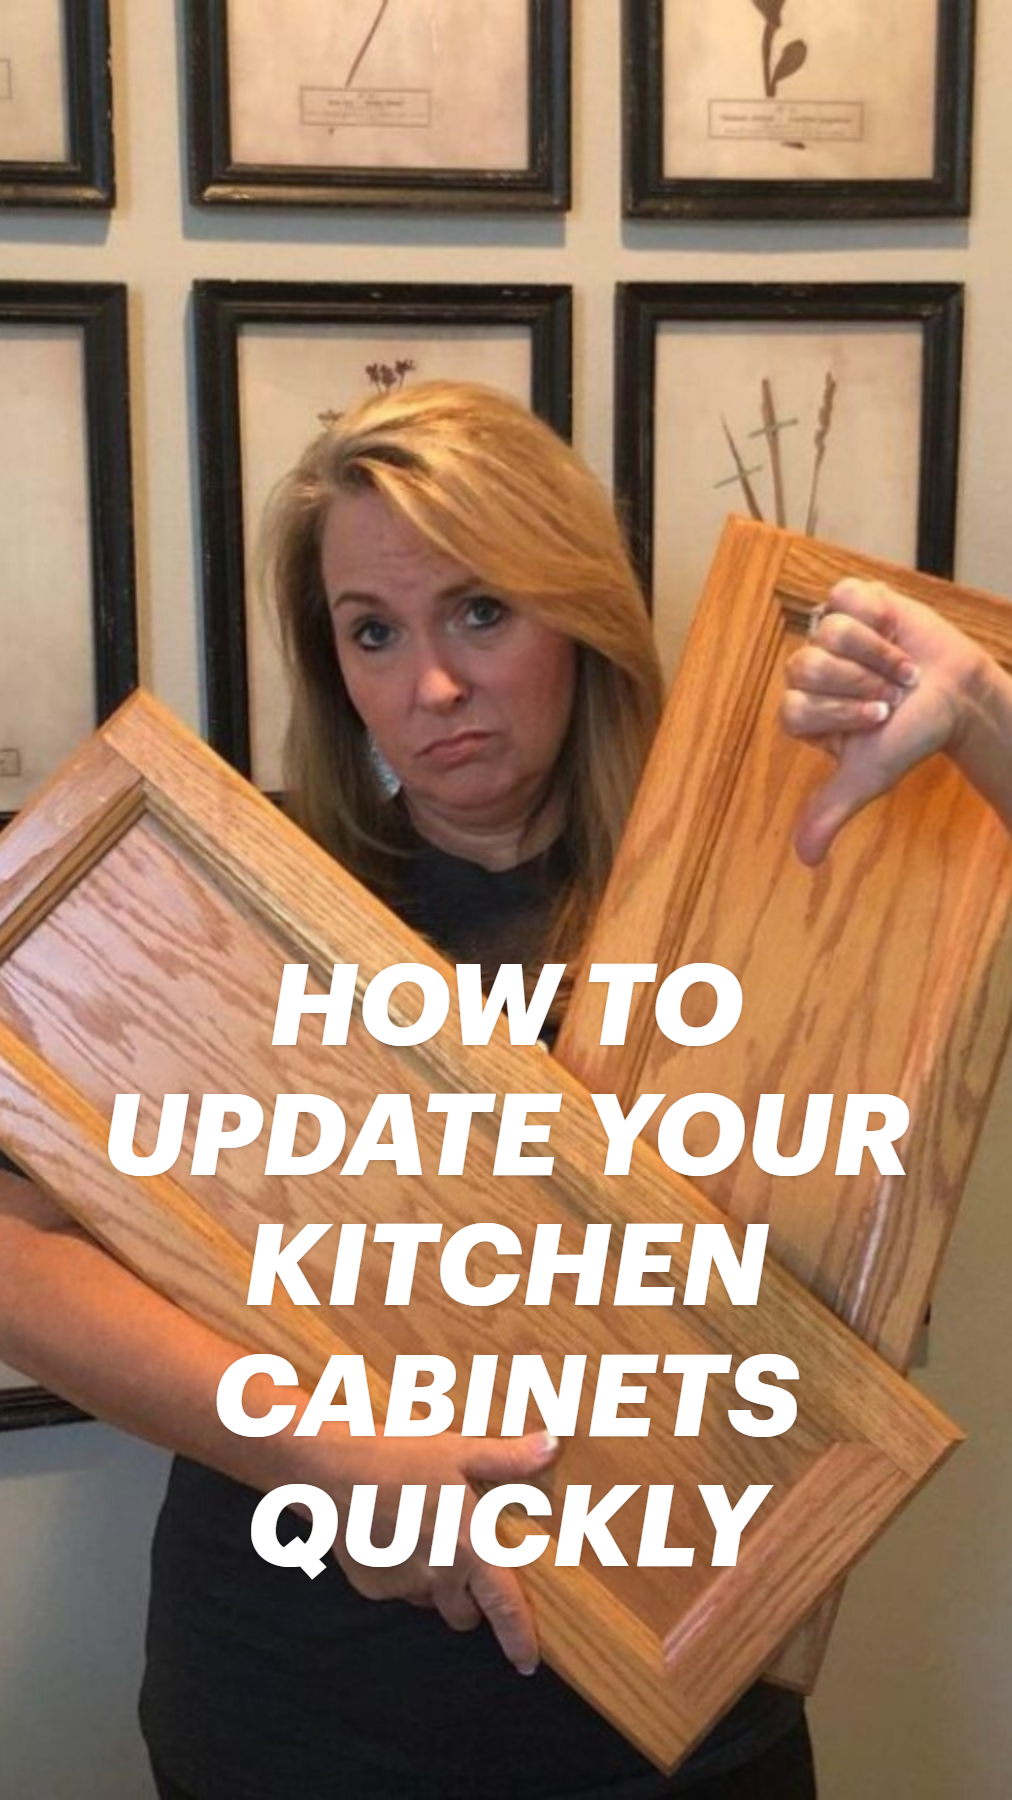 HOW TO UPDATE YOUR KITCHEN CABINETS QUICKLY